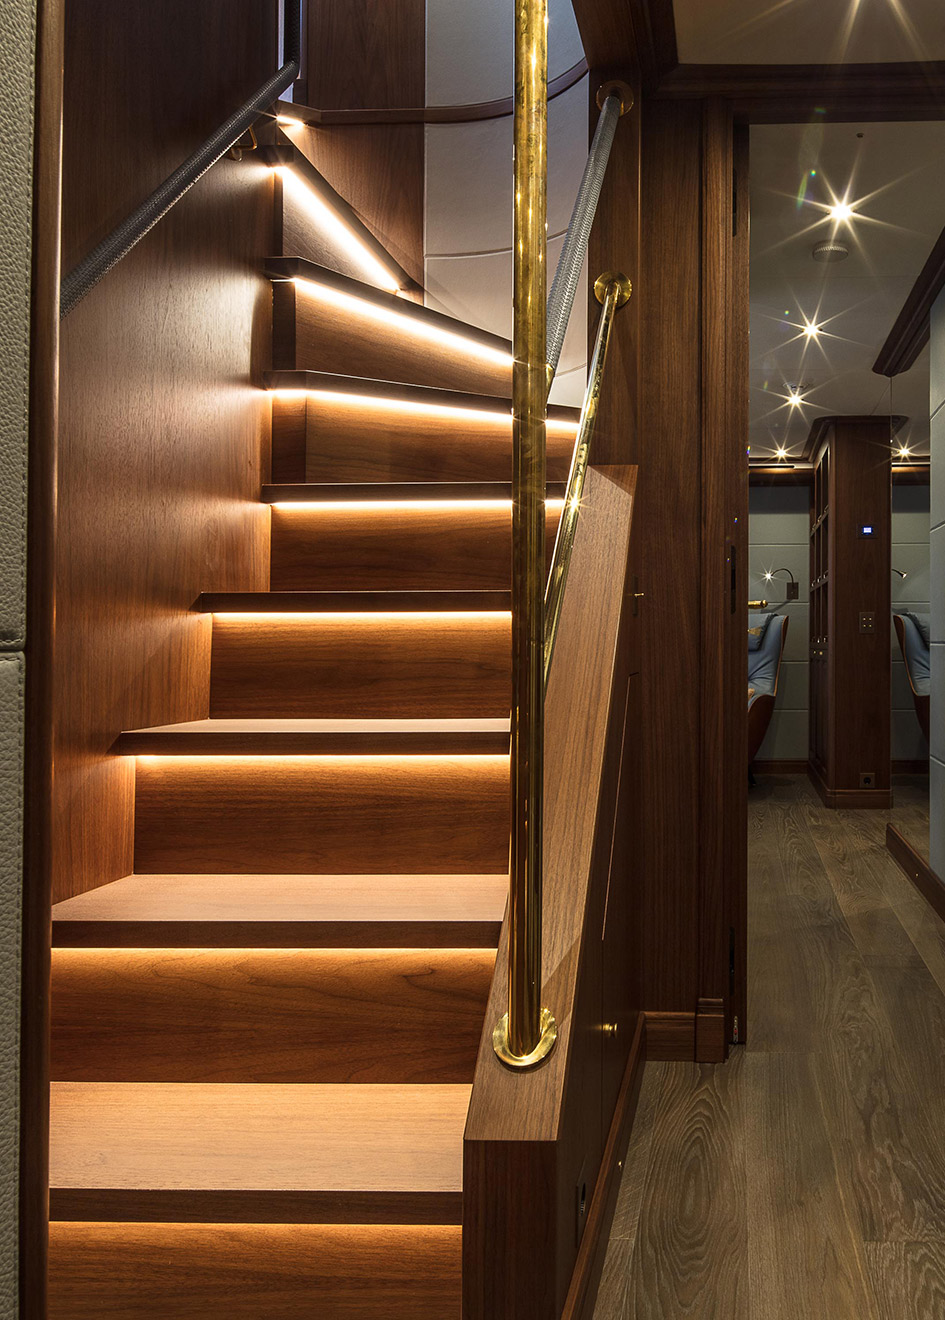 the-staircase-of-the-cantiere-delle-marche-darwin-102-yacht-galego